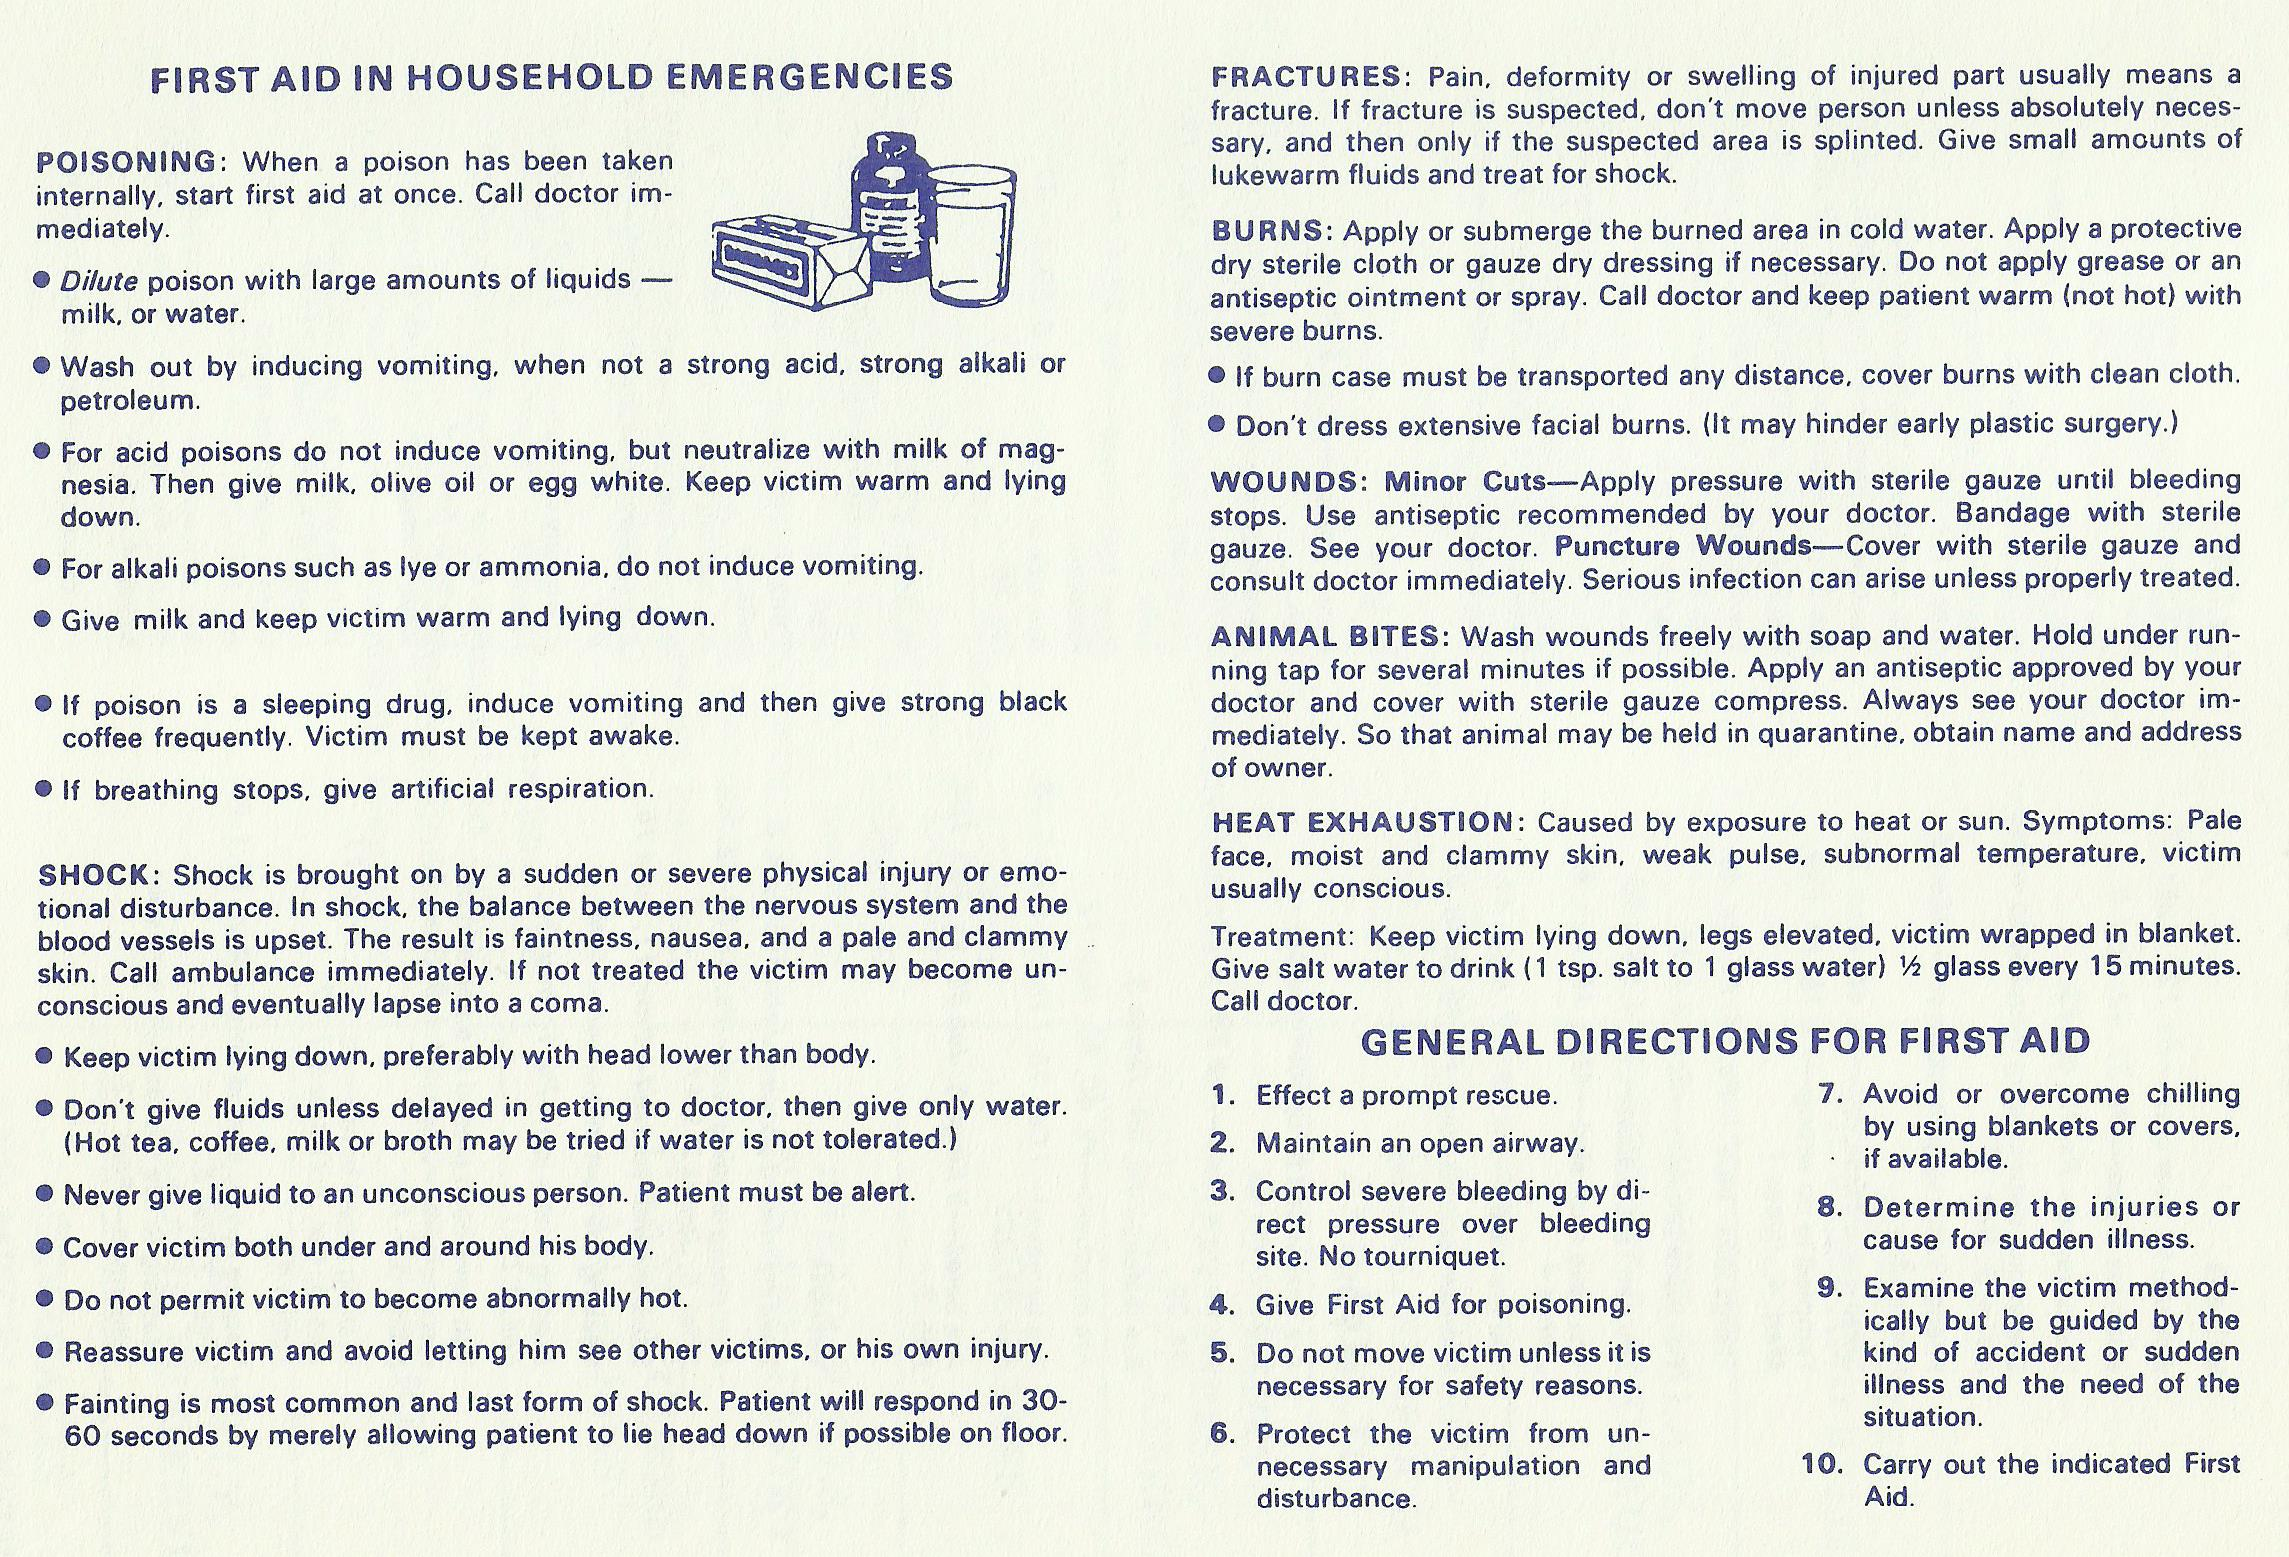 First Aid in Household Emergencies